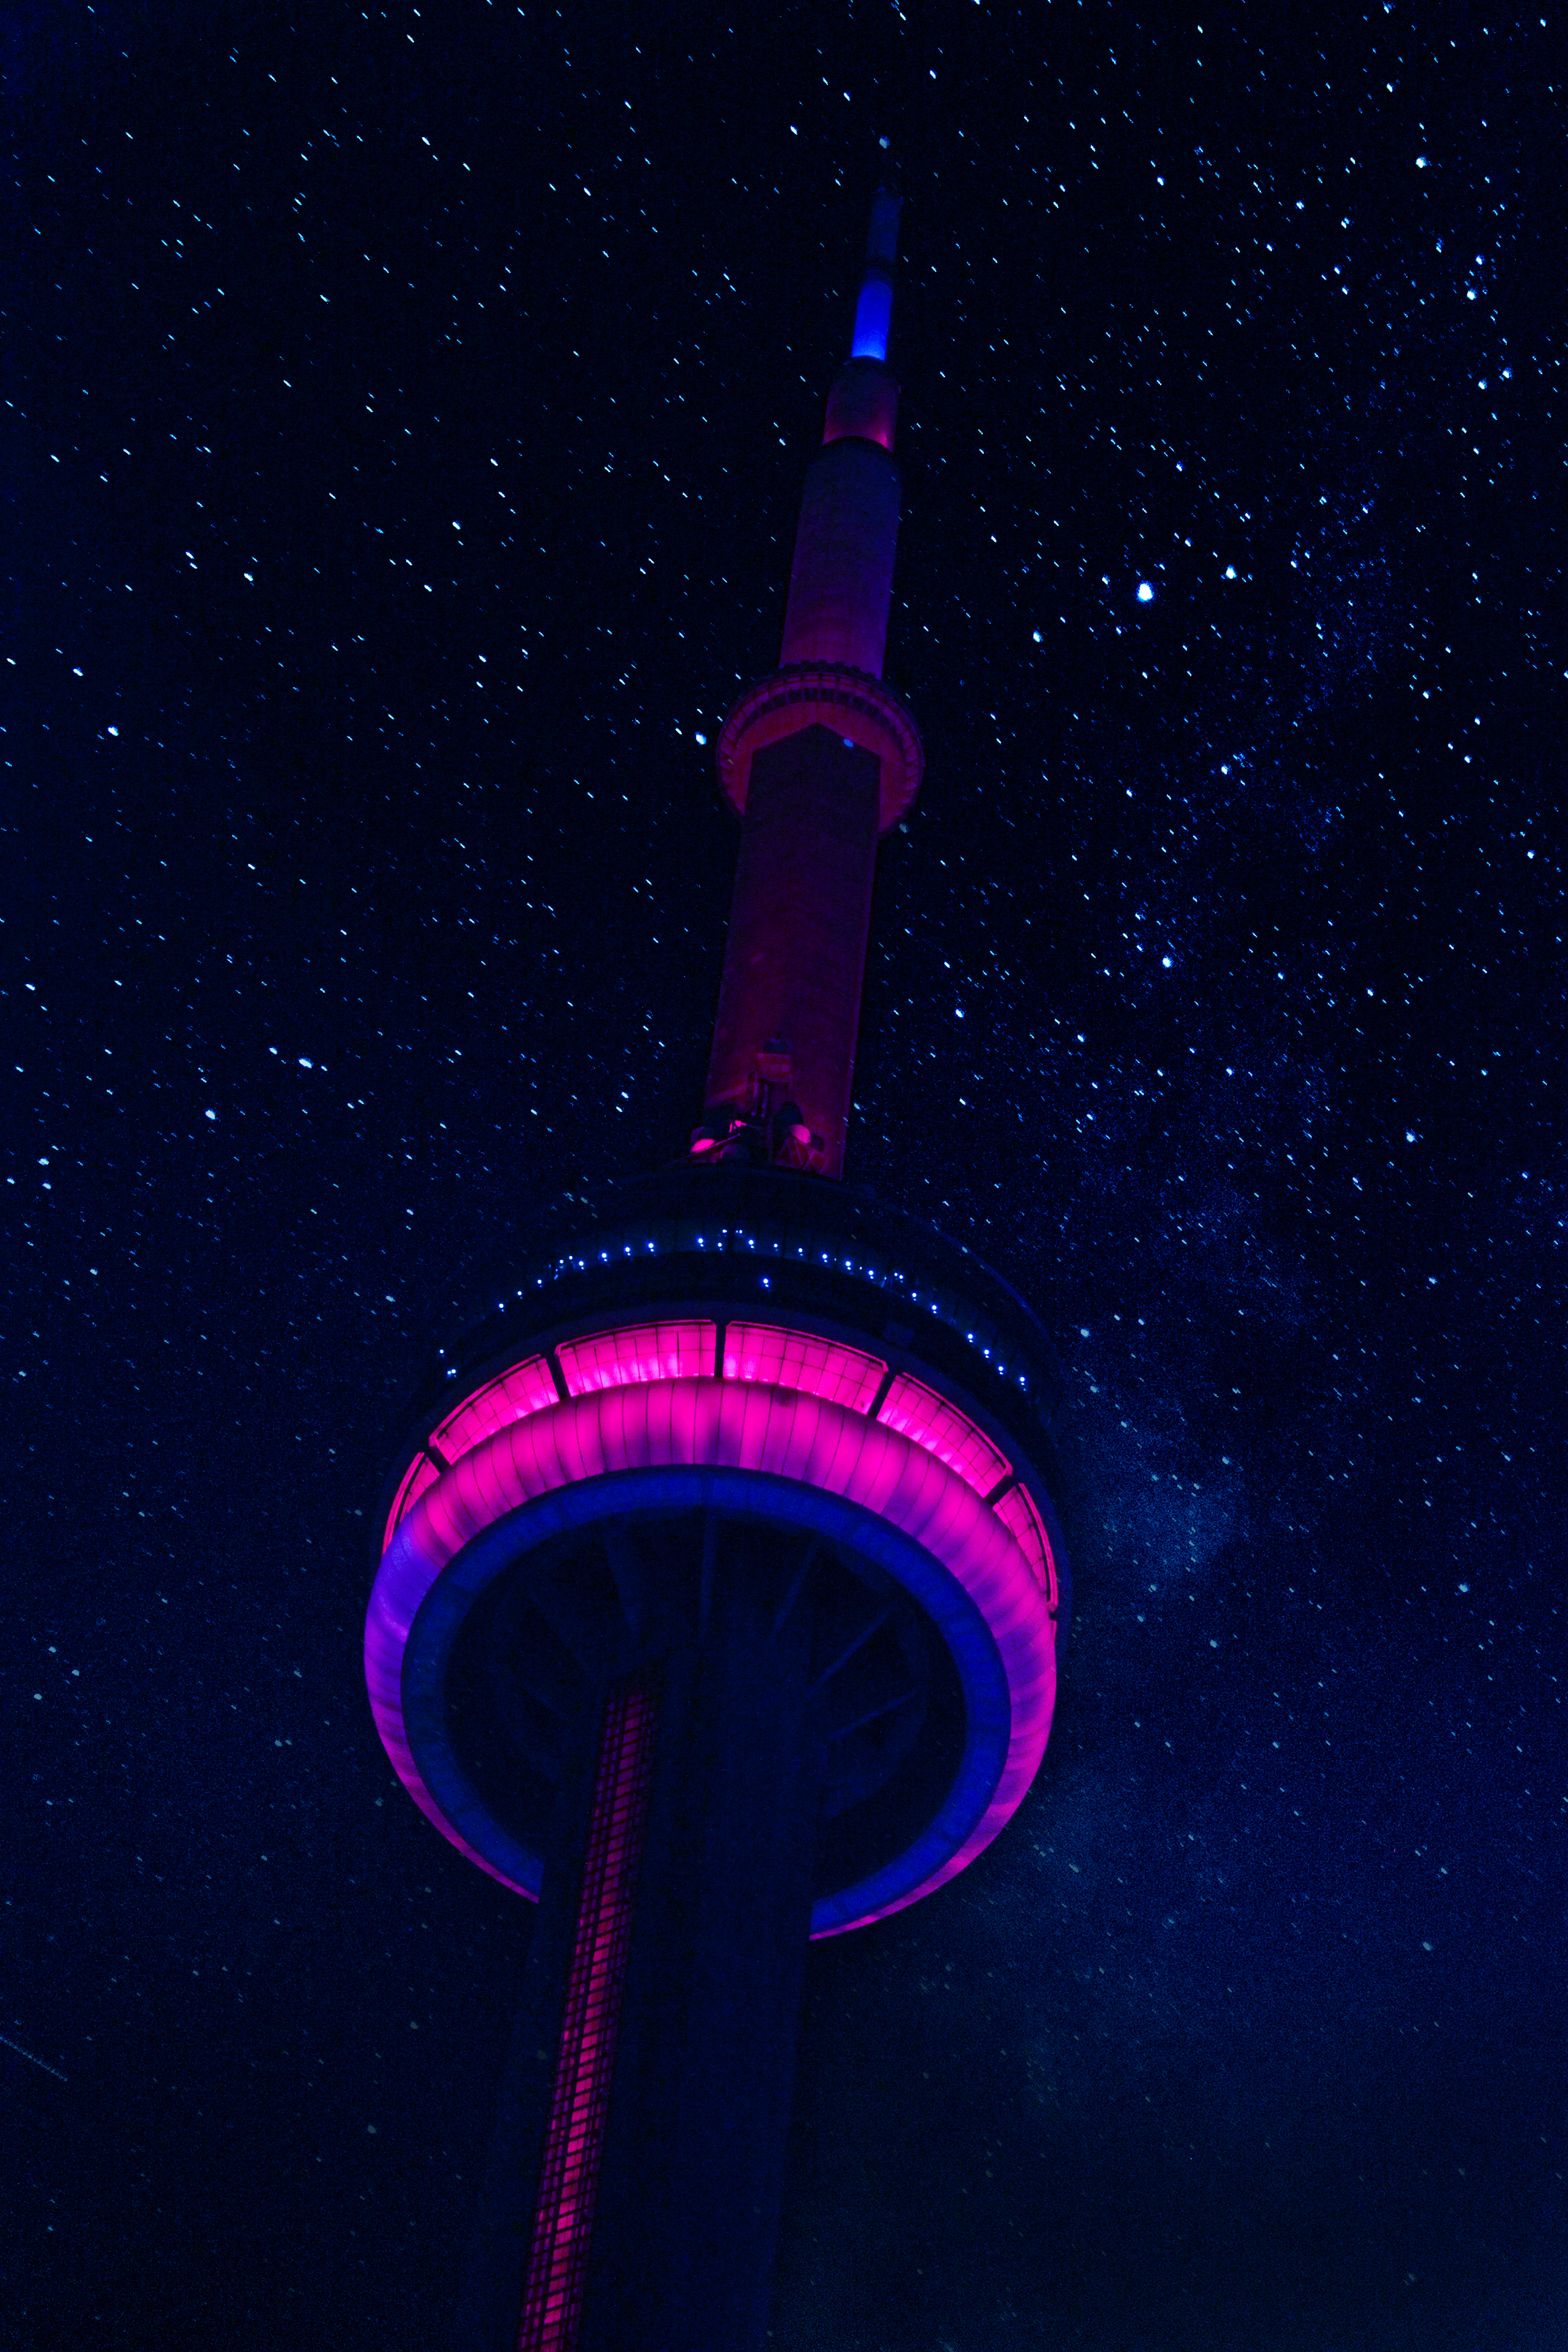 Low-angle Photo of Lighted Tower during Night